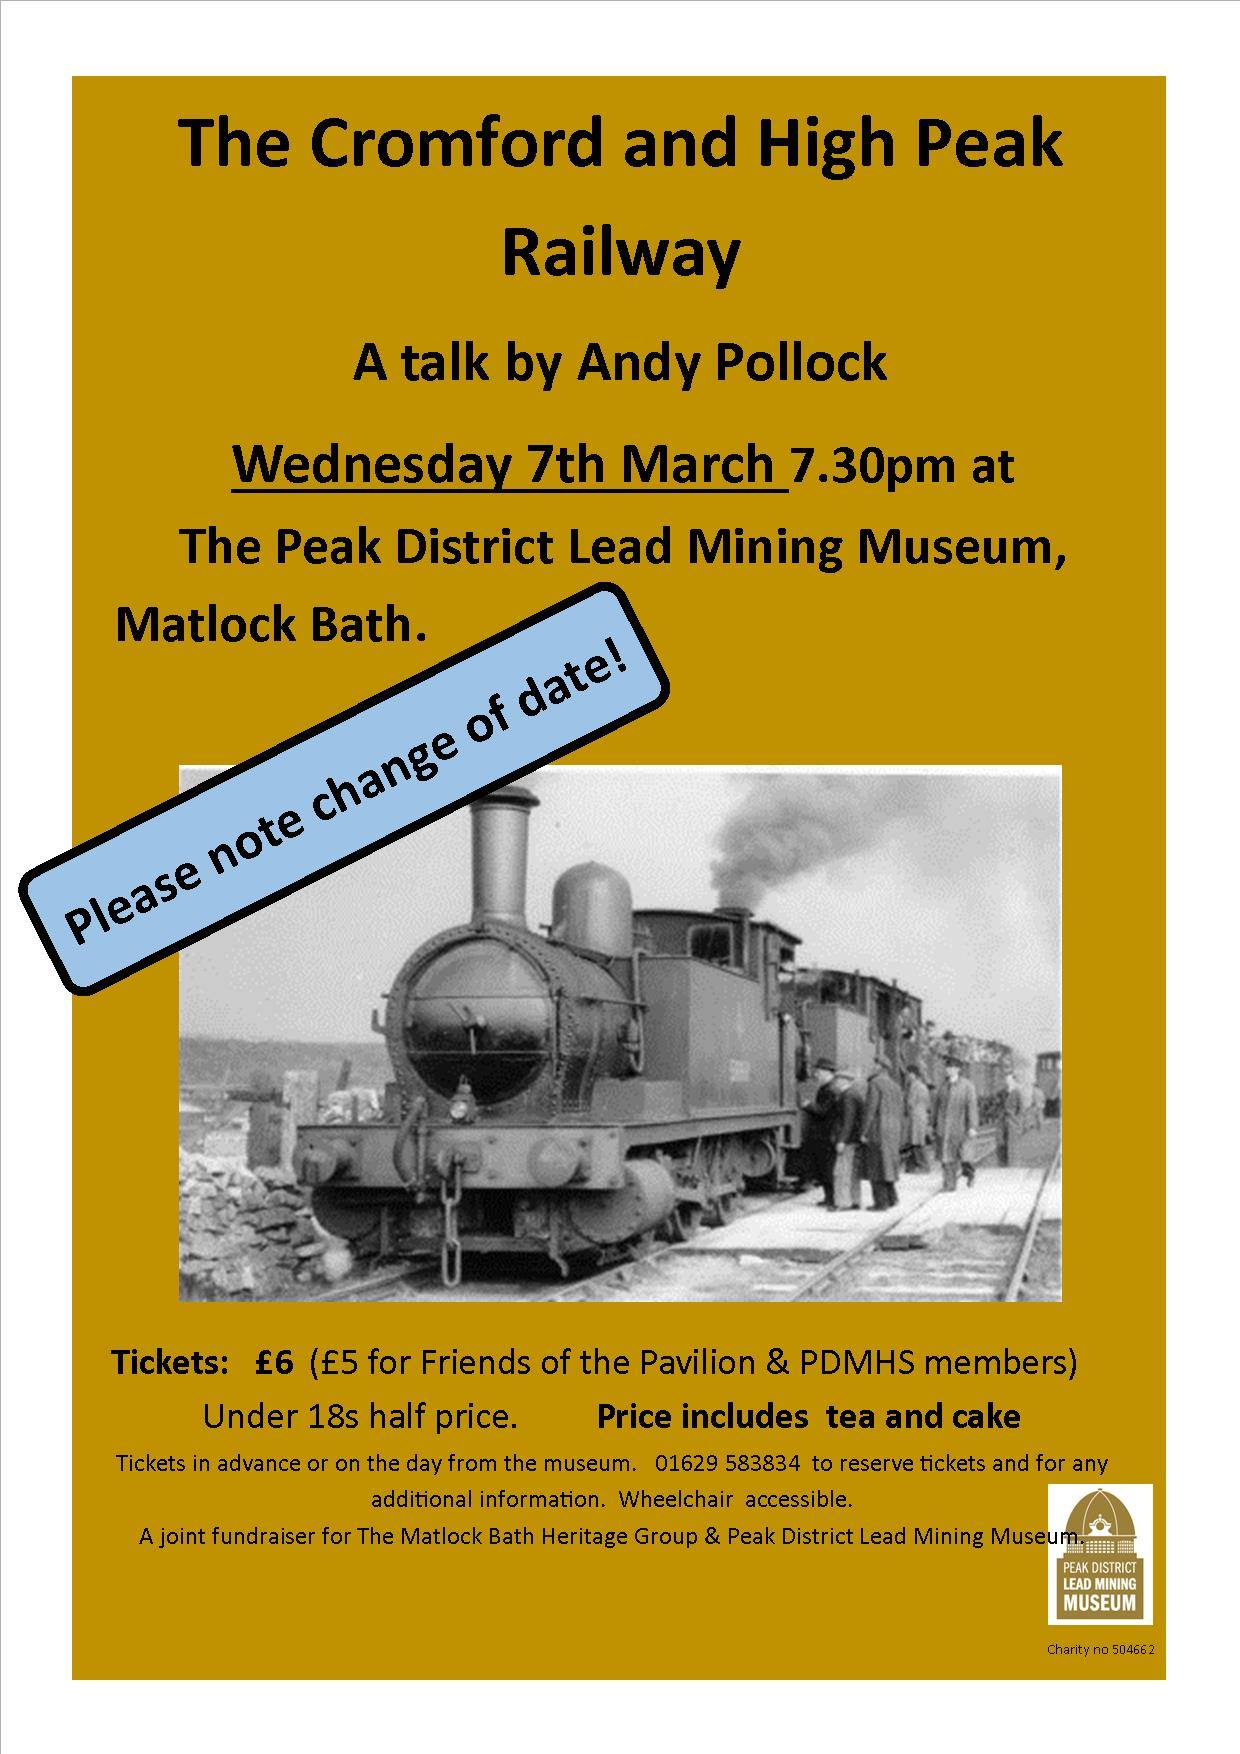 Derbyshire heritage event - Cromford and High Peak Railway talk at the Peak District Mining Museum